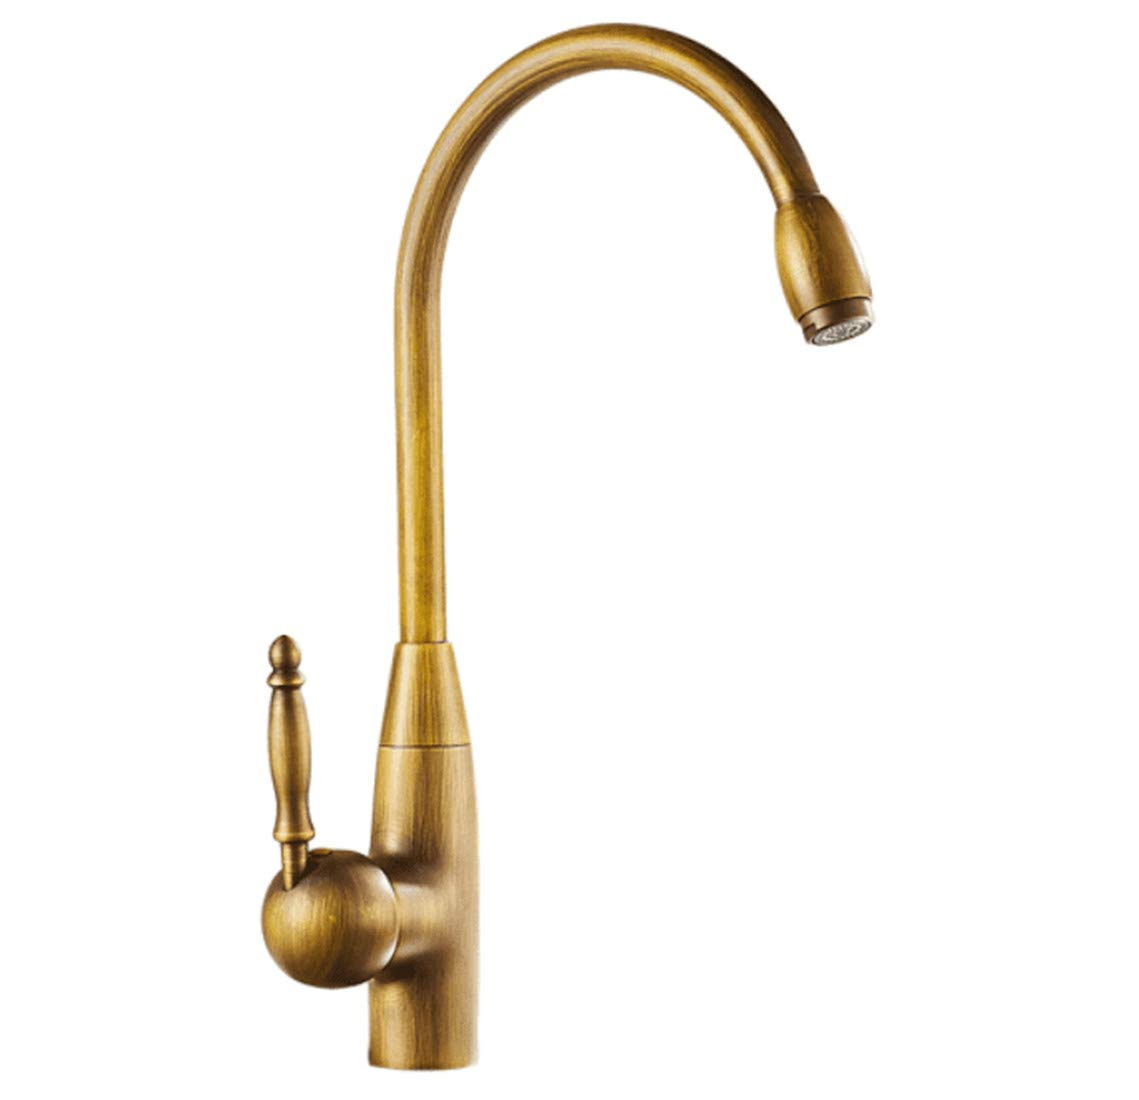 Mucert Tap,All Copper,Basin Fauicet,European,Hot and Cold Water,Bathroom Cabinet Faucet